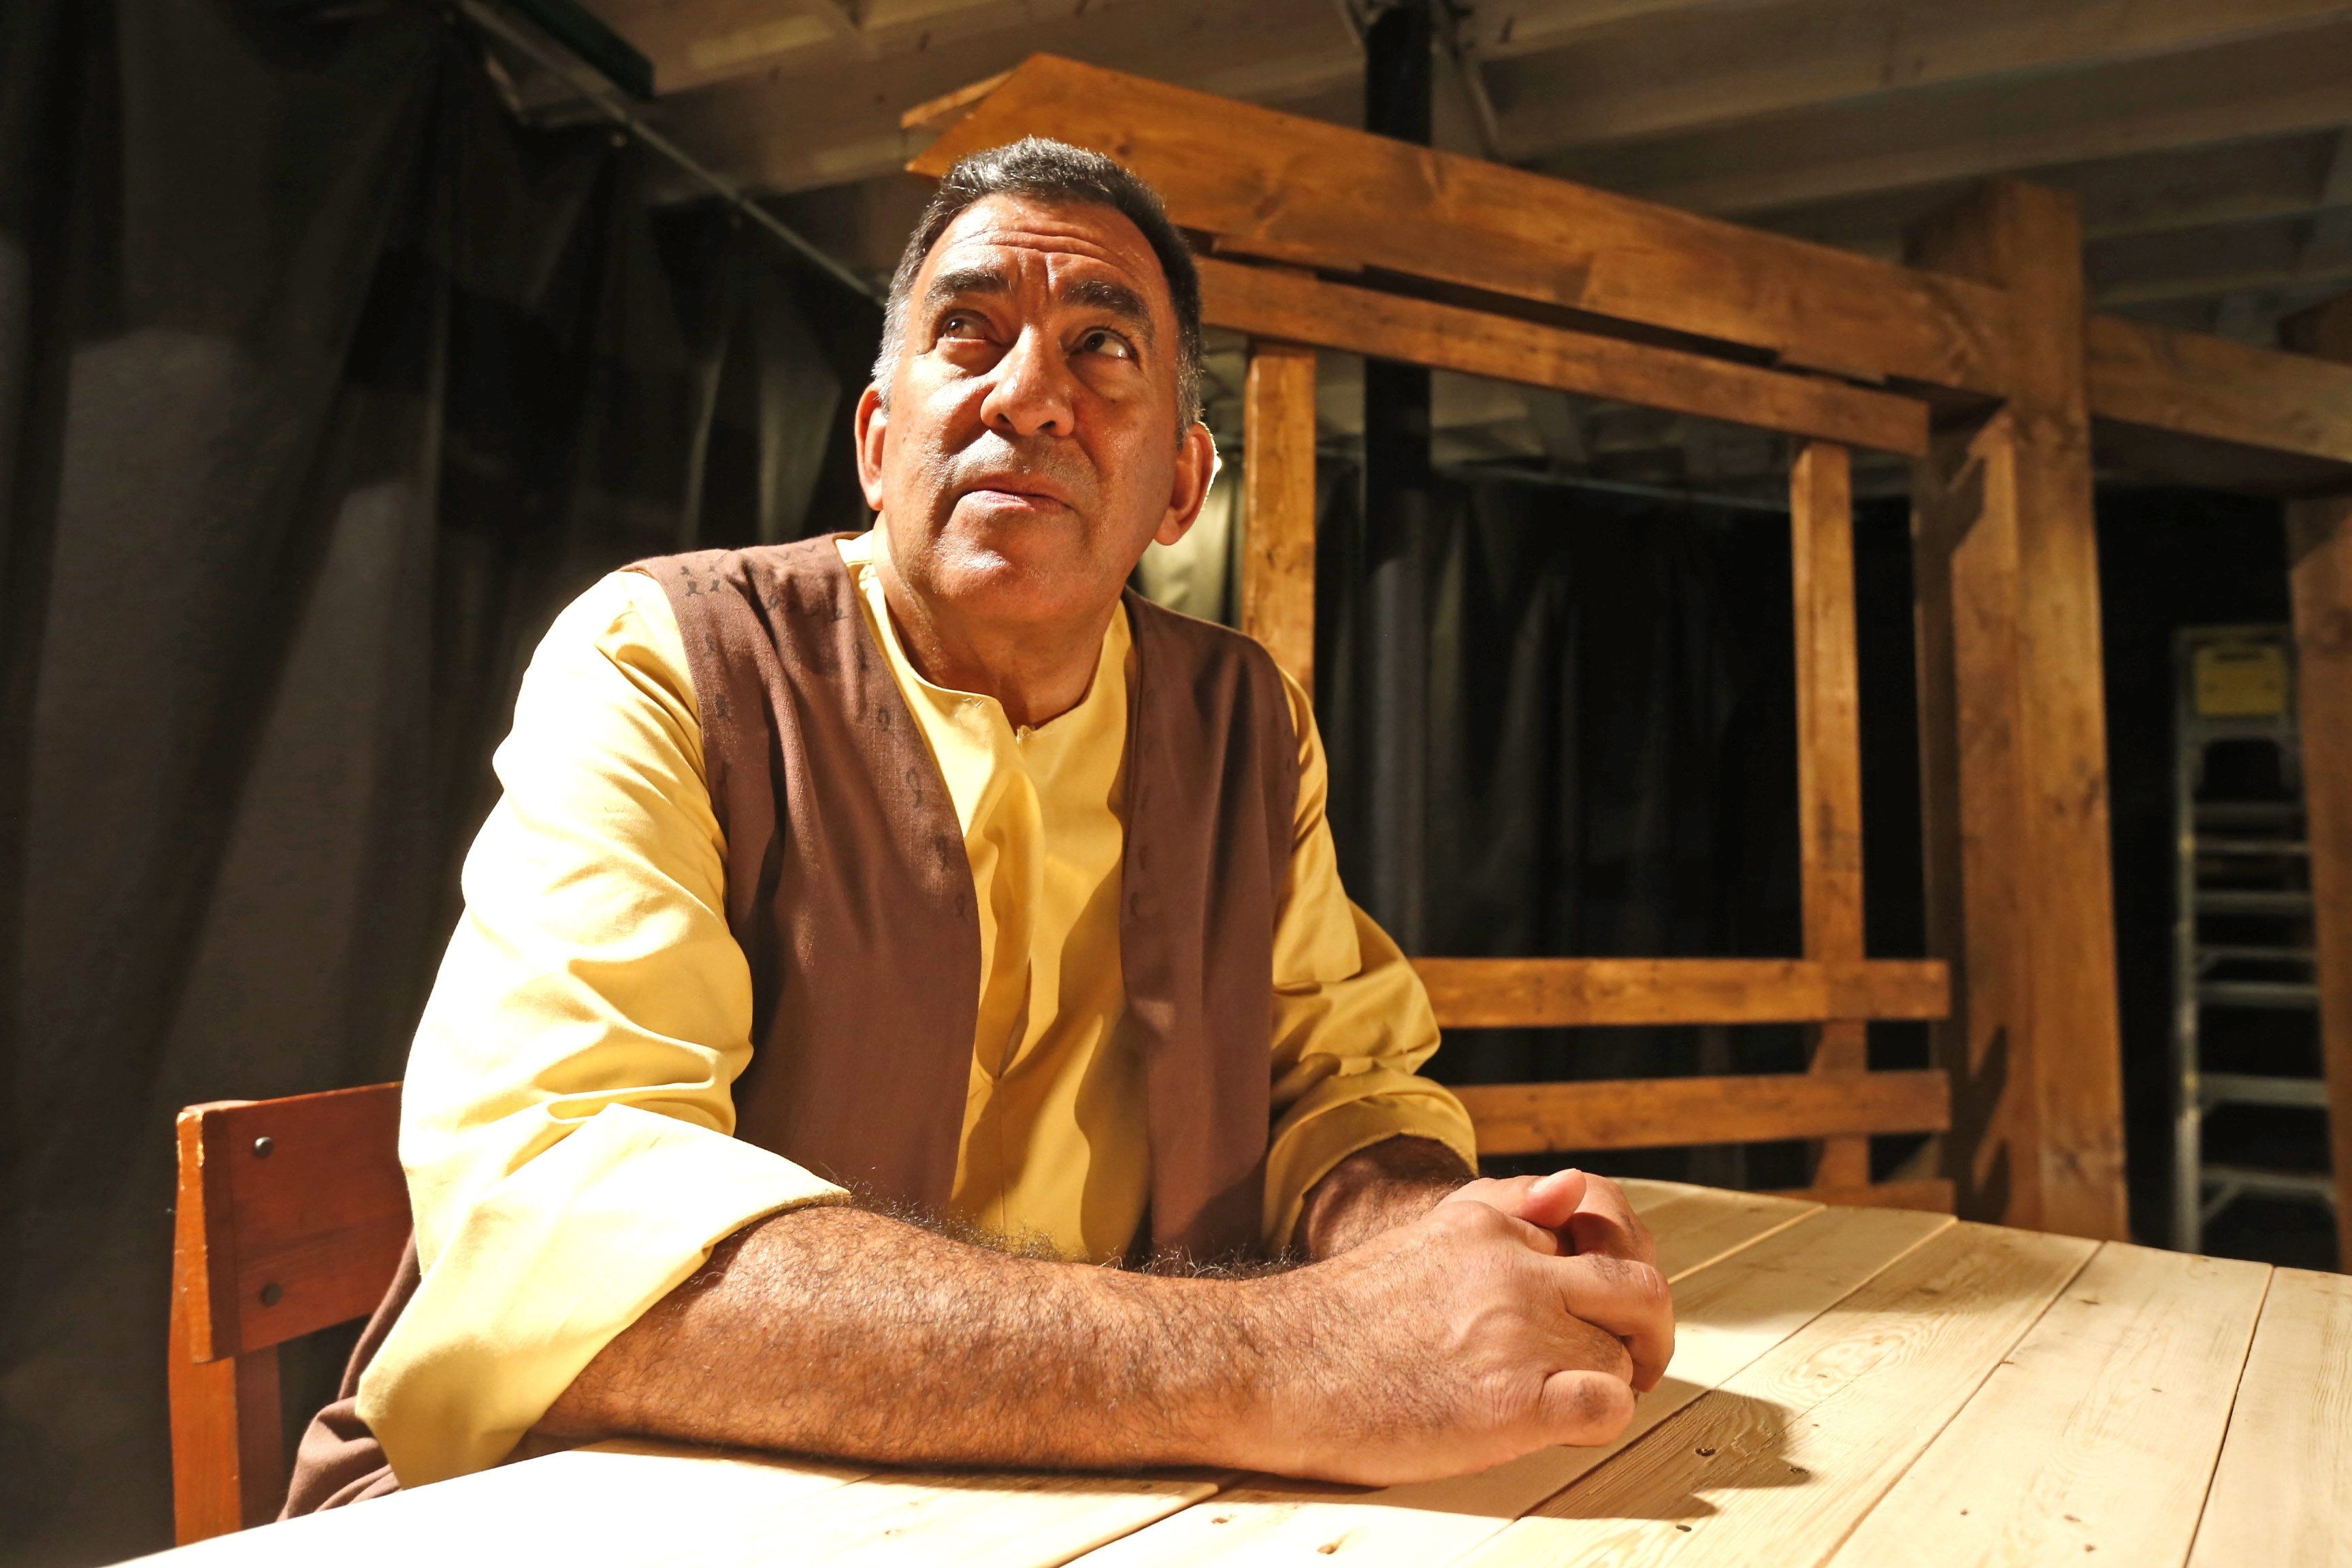 """Victor Morales, currently rehearsing for American Repertory Theater's production of """"The Crucible,"""" wants to see more public support for smaller companies. """"There's a lot of theater companies in Buffalo and few people coming to see the shows,"""" he says."""